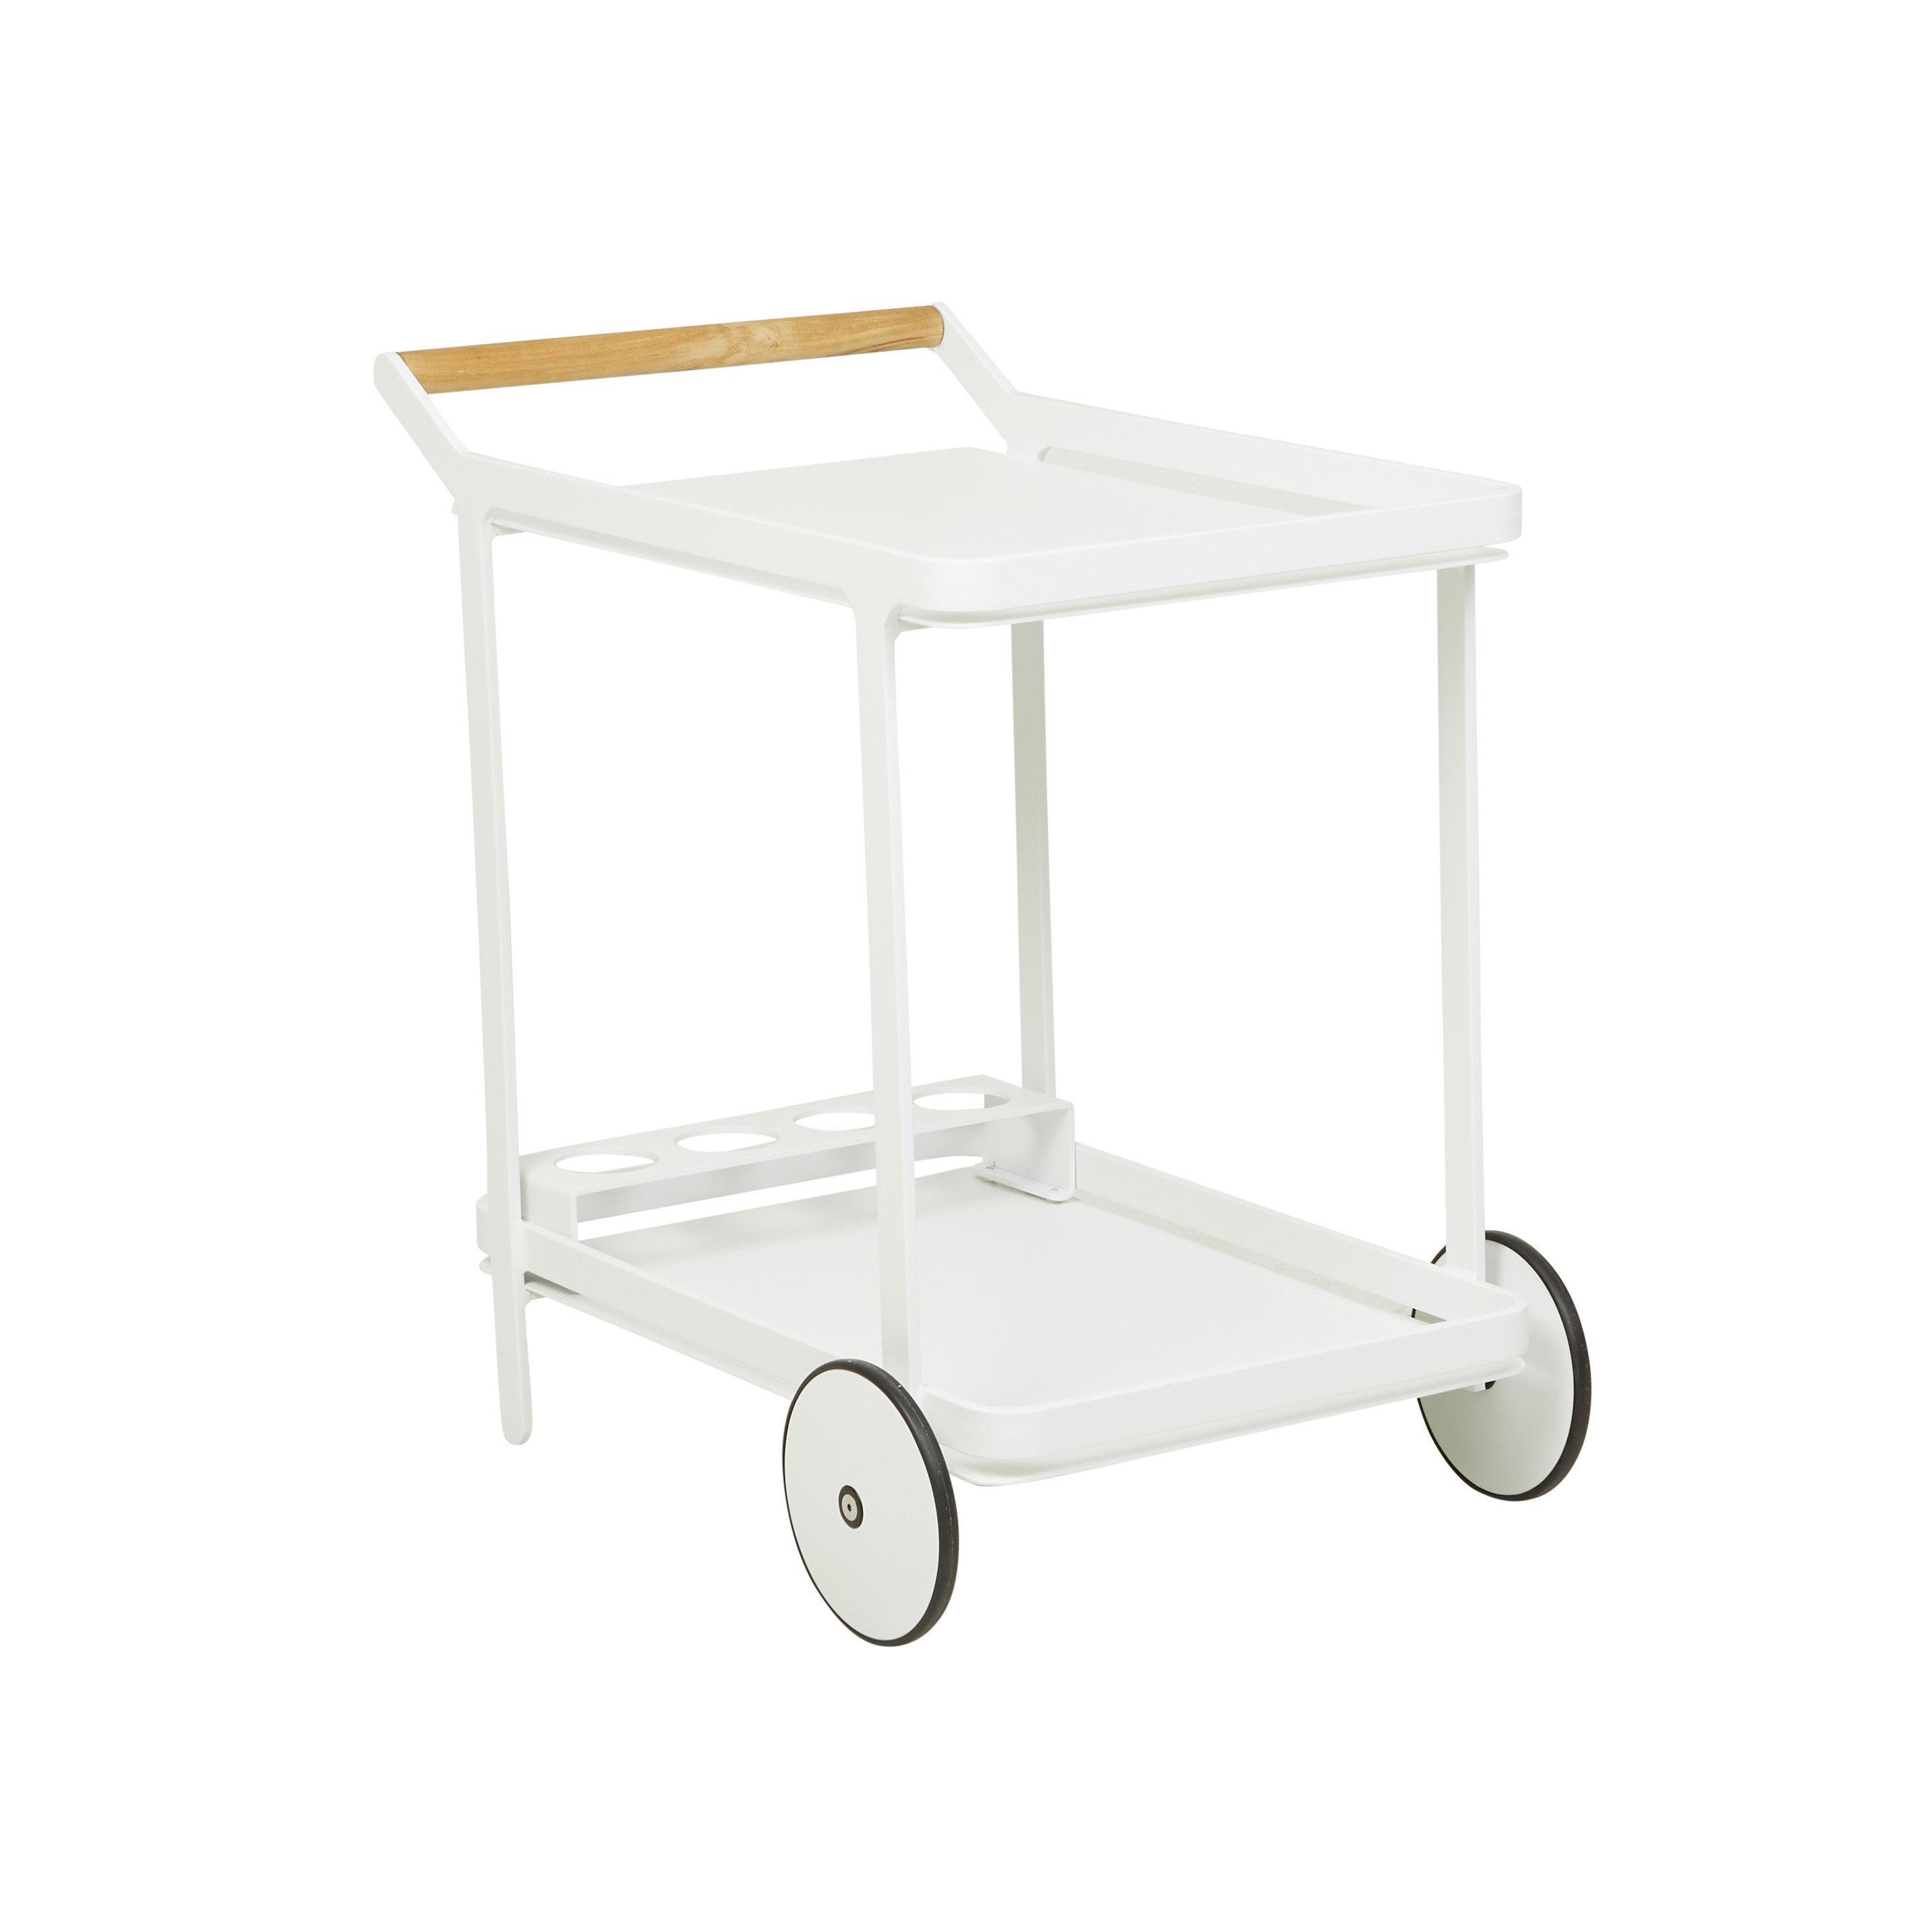 Furniture Hero-Images Coffee-Side-Tables-and-Trolleys lagoon-bar-trolley-01